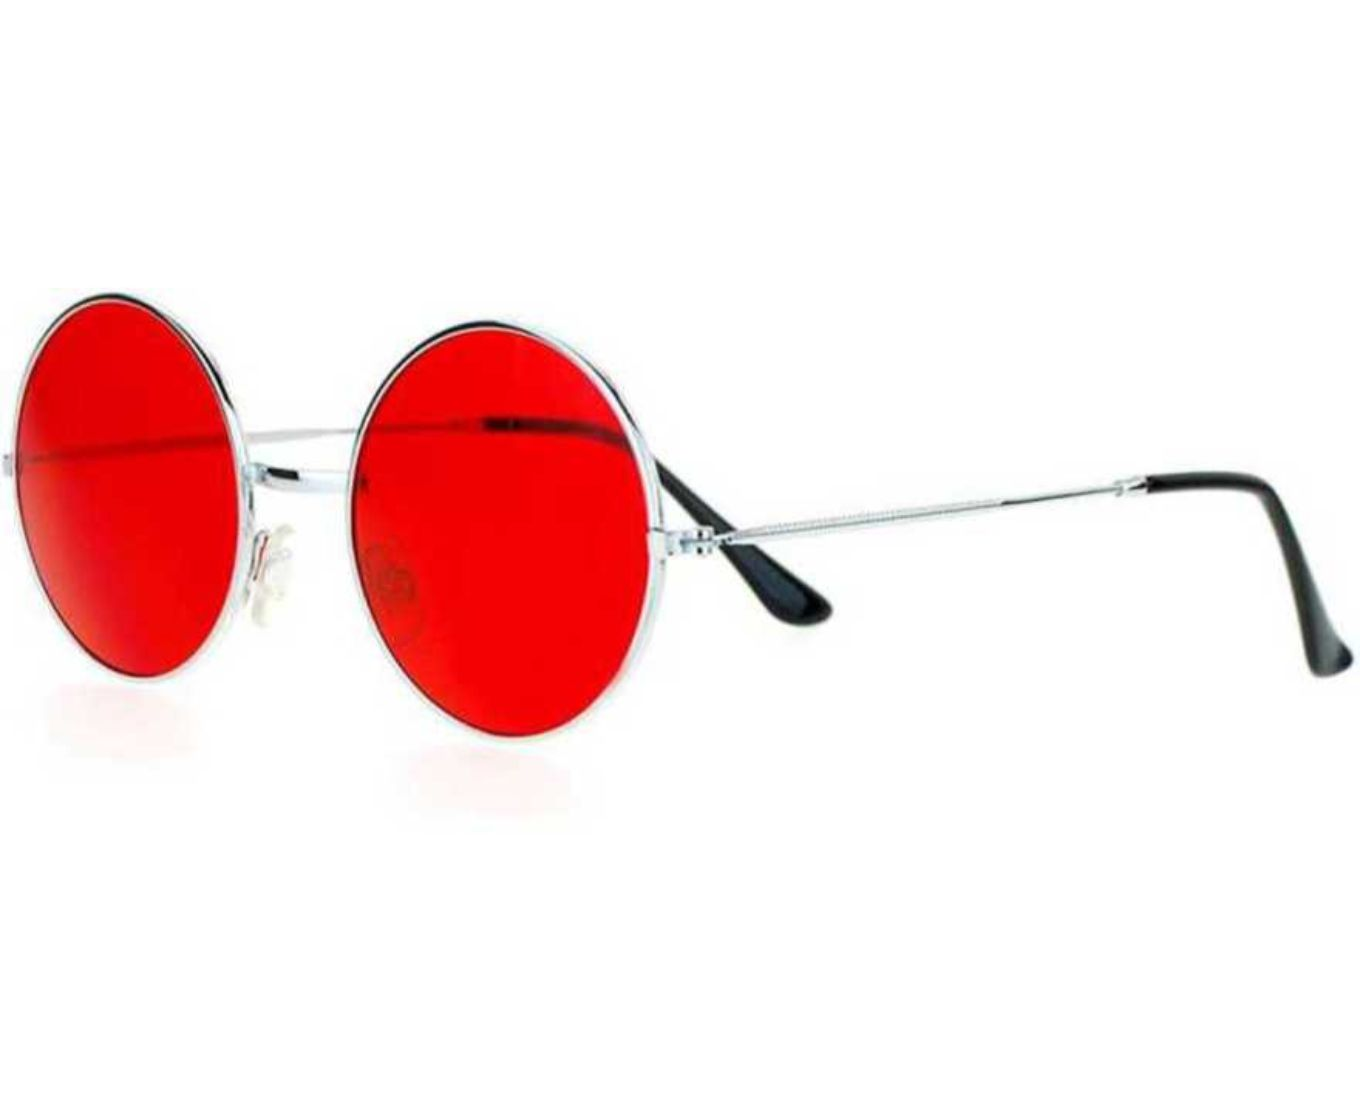 ETRG Unisex Premium  Round Frames Red Metal Sunglasses (Pack of 2)